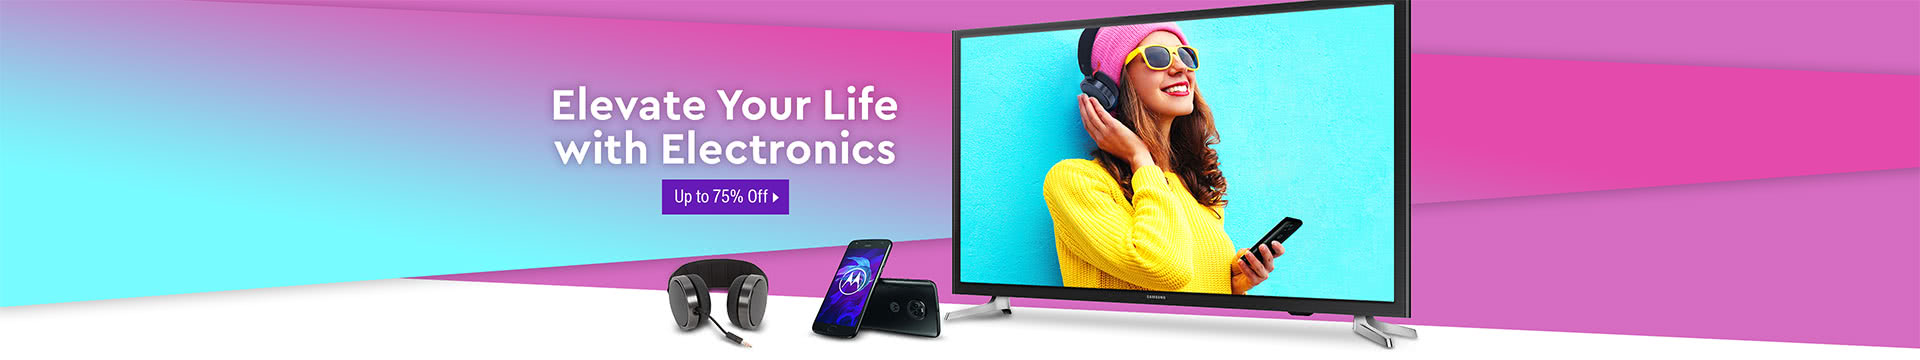 Elevate your life with electronics